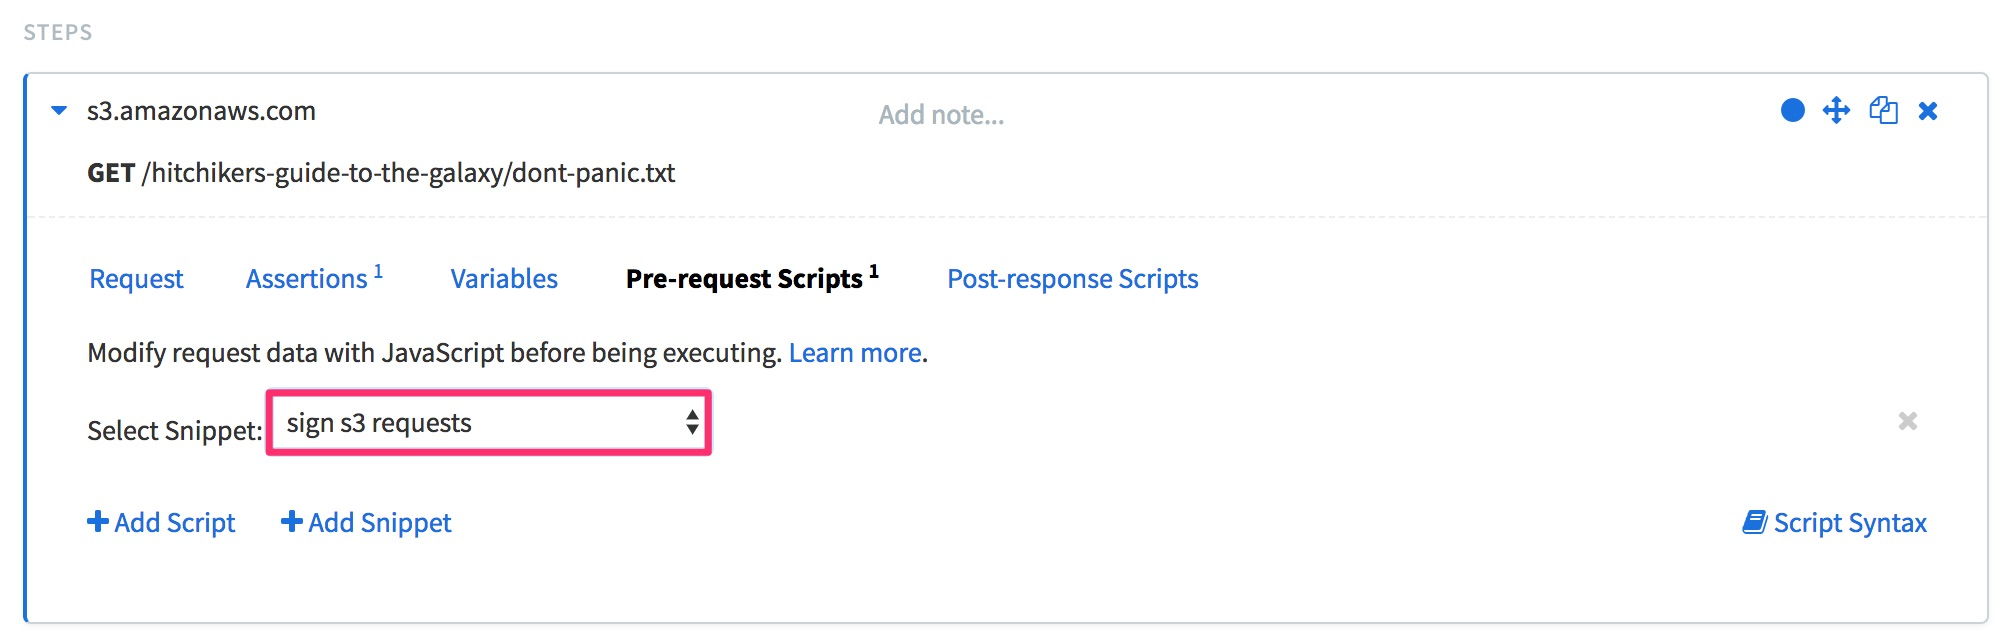 """The same request step in Editor mode from the previous image, but this time with the Pre-request Scripts tab selected. The """"Select Snippet:"""" dropdown menu has the """"sign s3 requests"""" snippet selected and highlighted."""